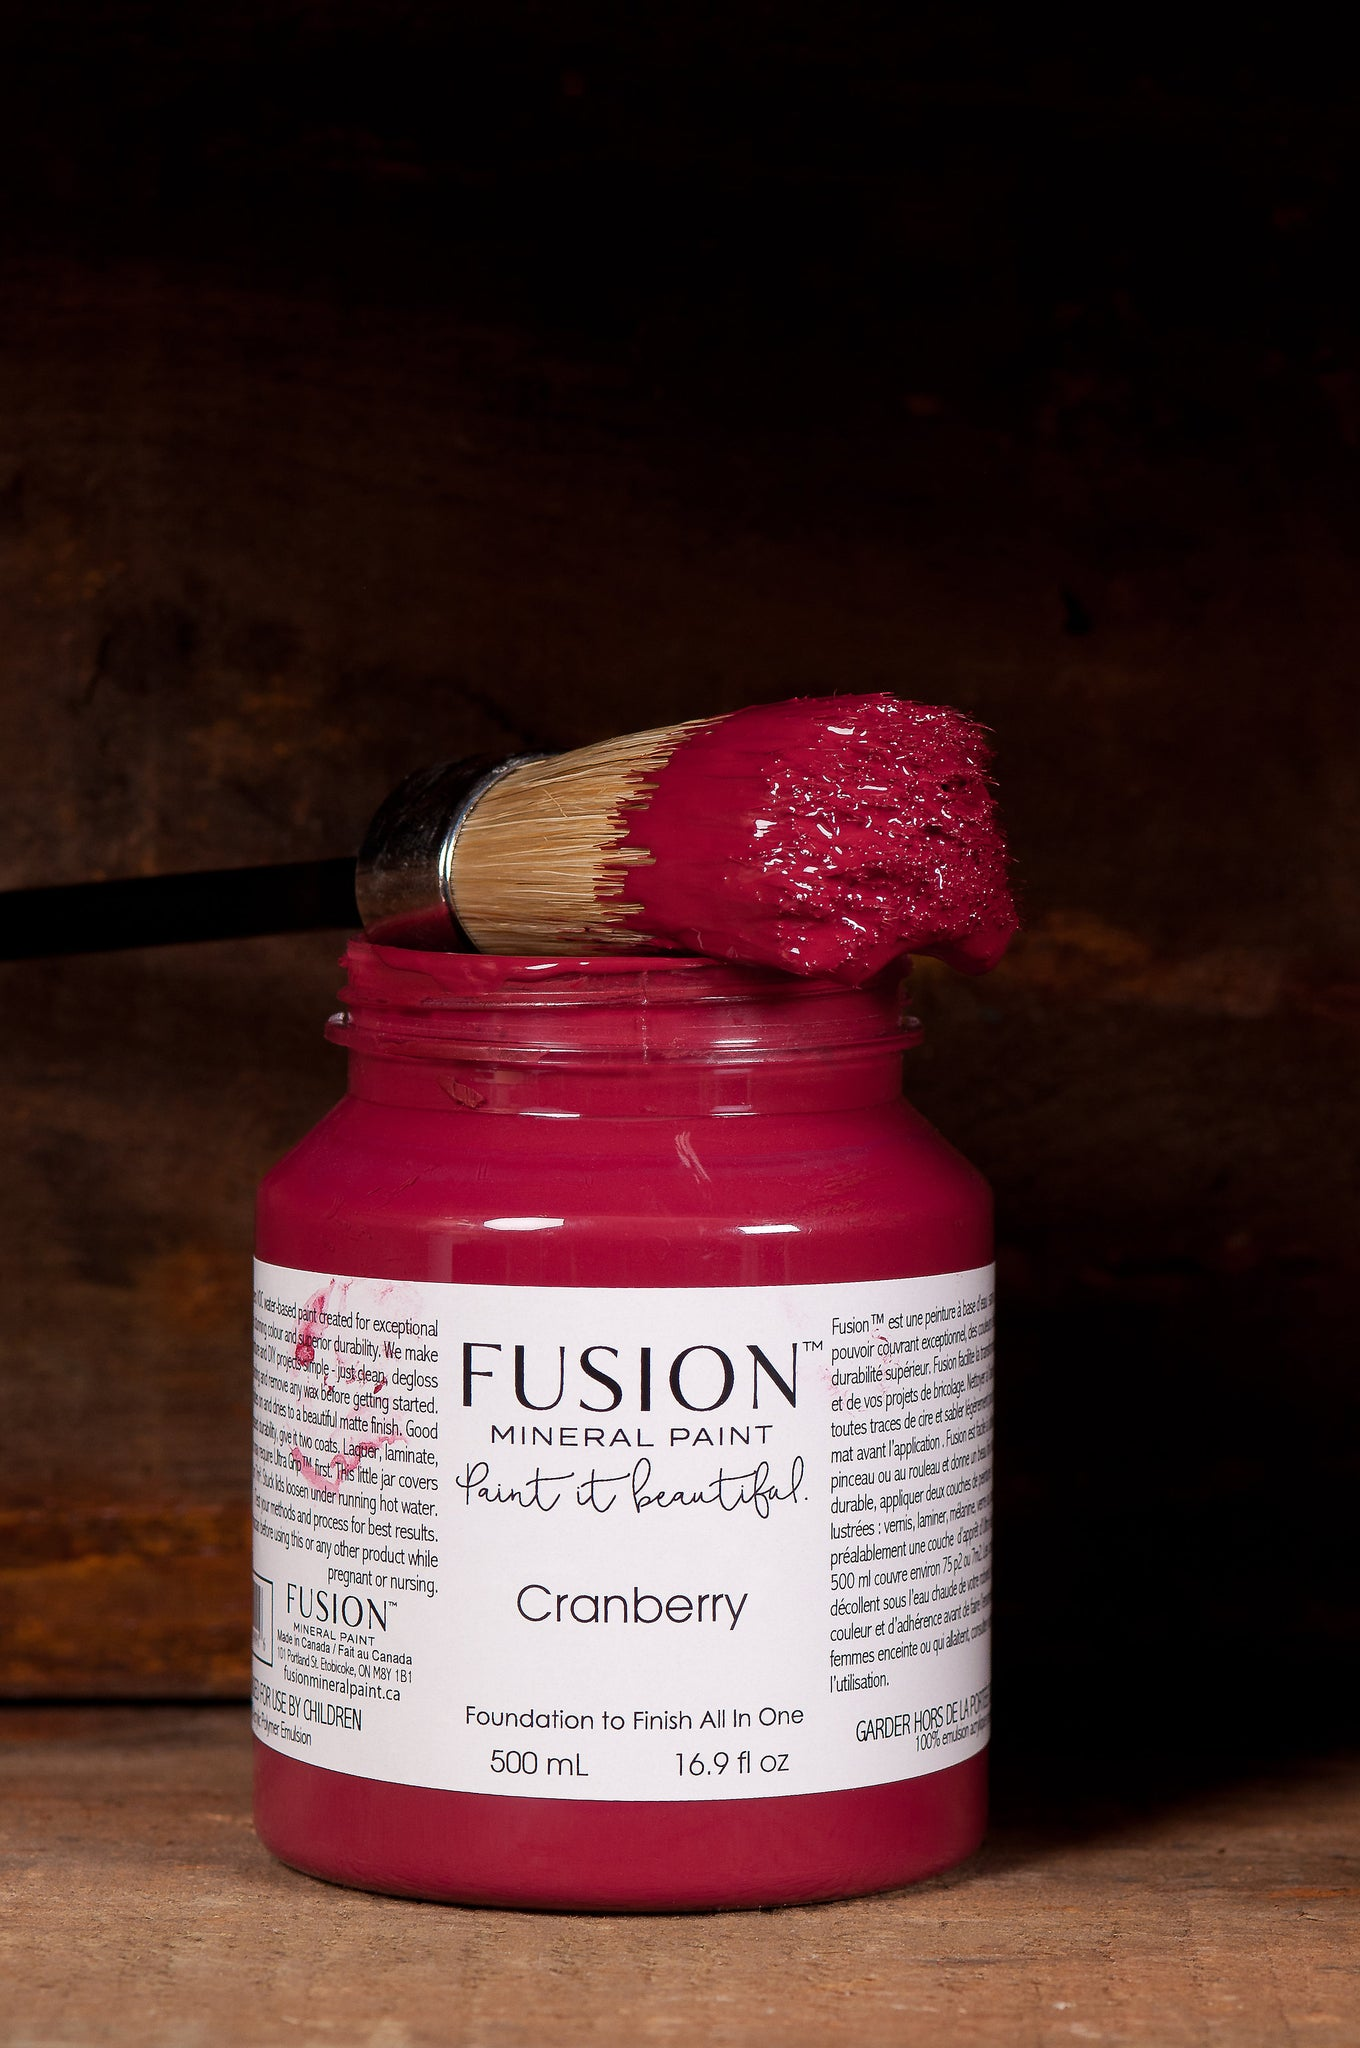 Cranberry by Fusion